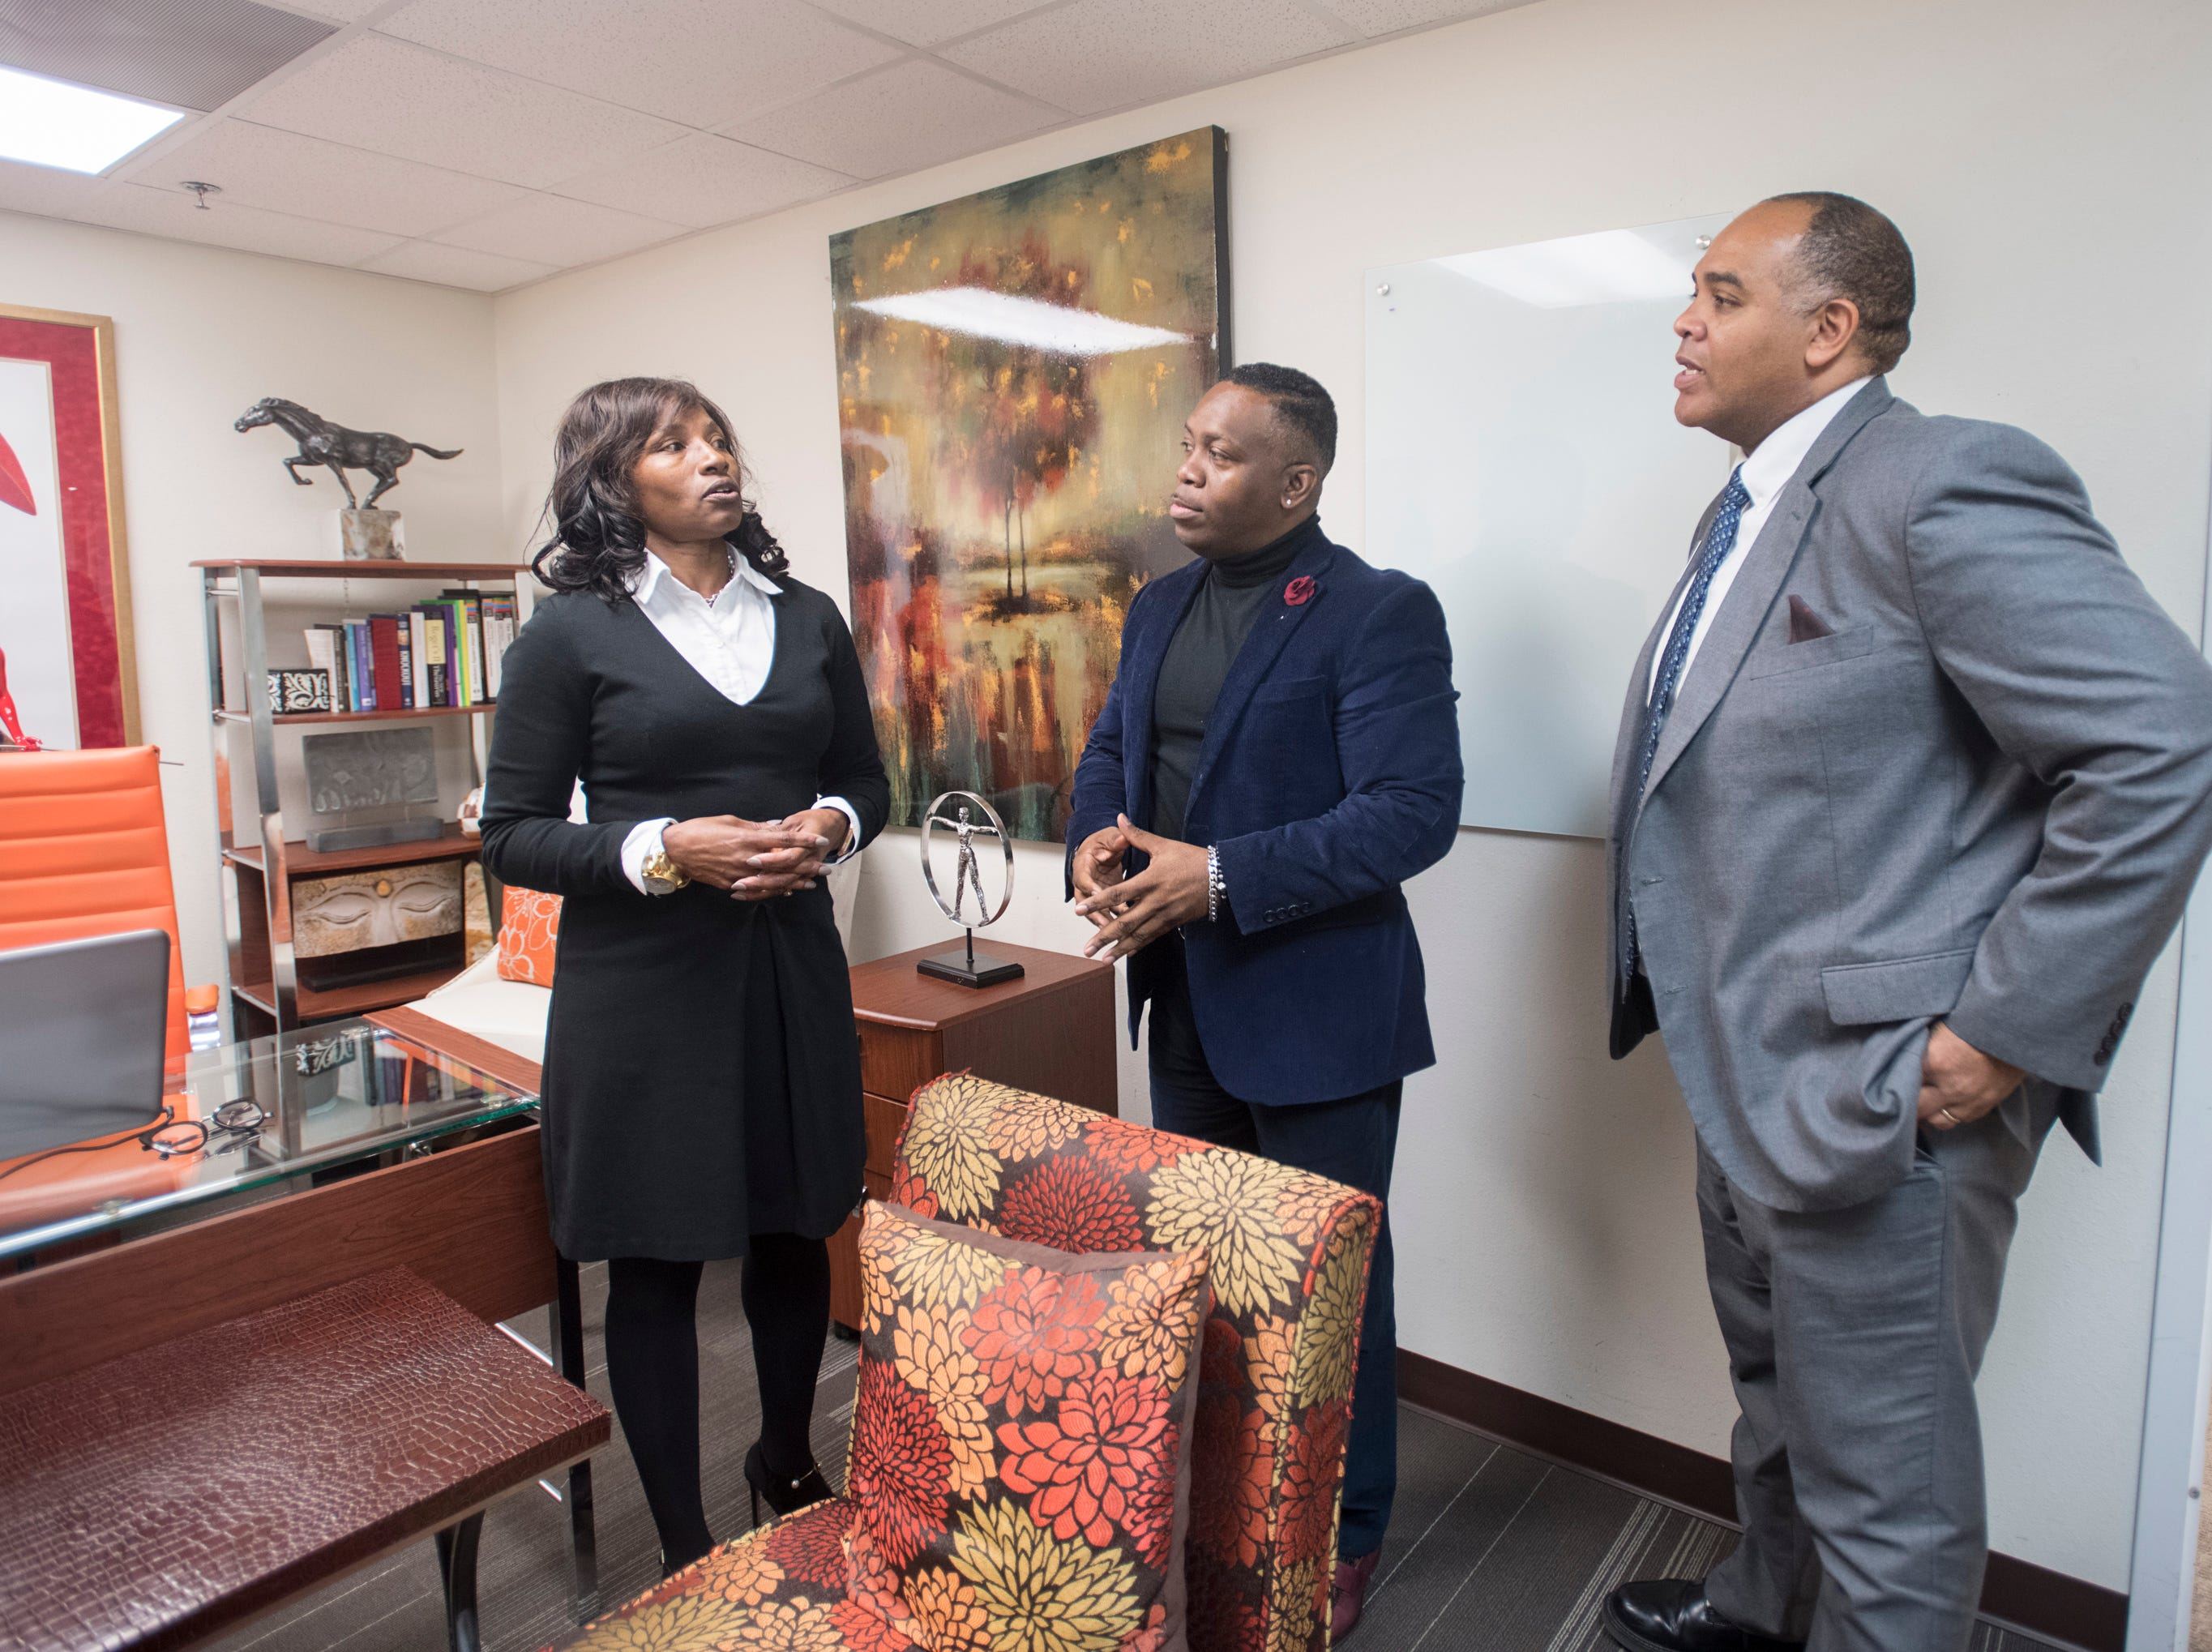 Brian Wyer, President/CEO of the Gulf Coast Minority Chamber of Commerce, right, talks with Jessica Griffen, chairwoman & CEO, and John Rigsby, president of the Urban Development Center, in downtown Pensacola on Monday, March 4, 2019.